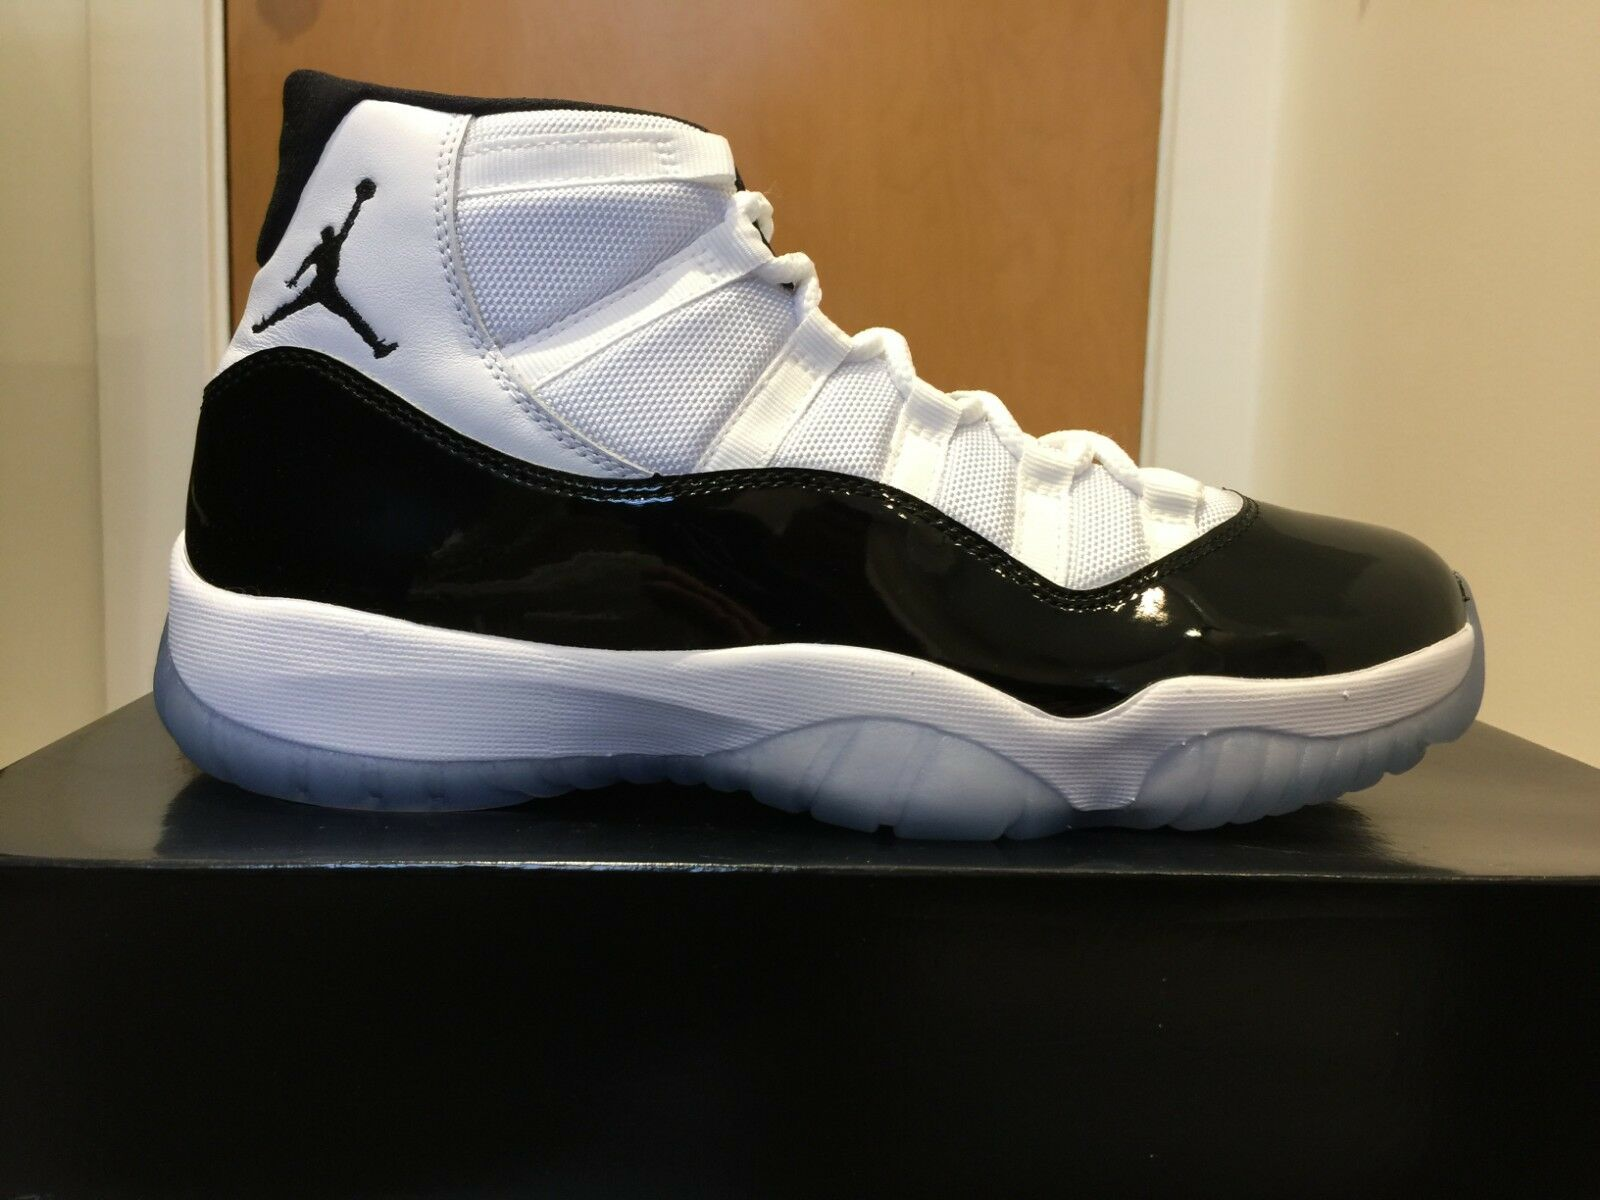 90c893537bd Nike Air Jordan 11 Retro (378037 100) SZ 11.5 Concords nxtjxy458-Athletic  Shoes